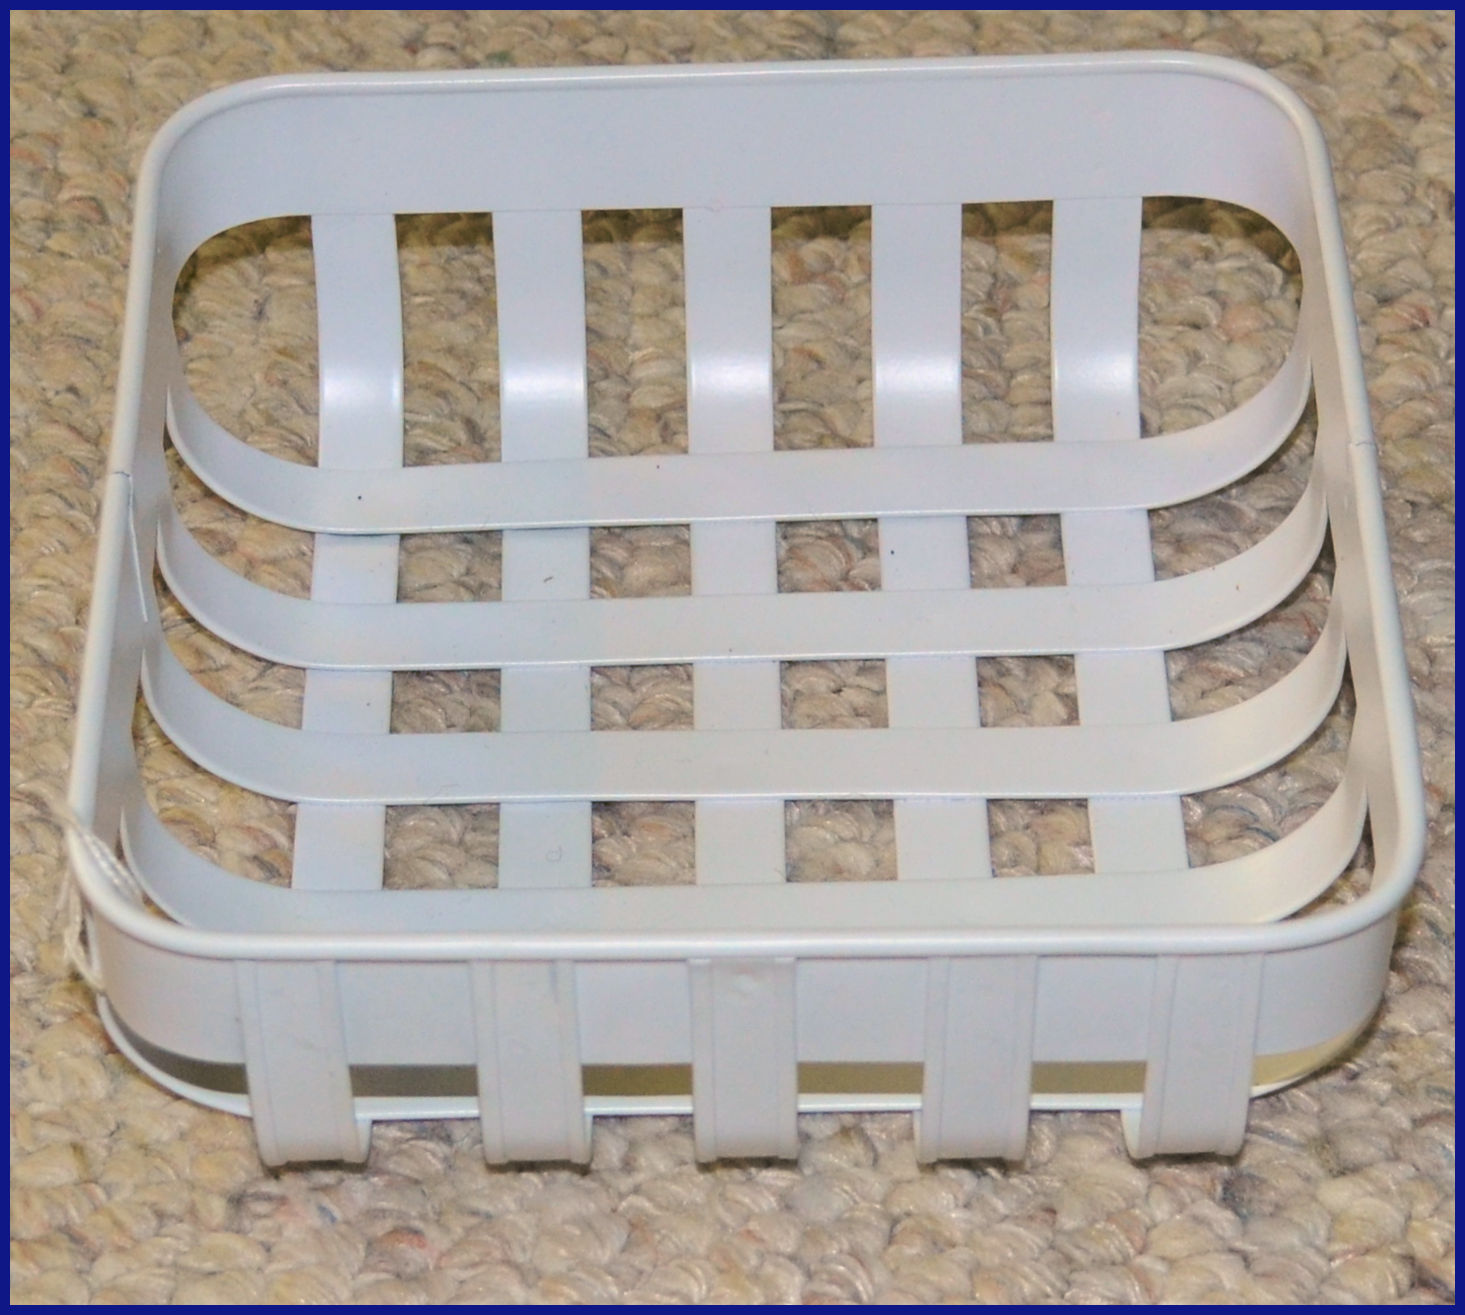 basket-white-napkin-basket-with-lid-np13527-no-lid.jpg